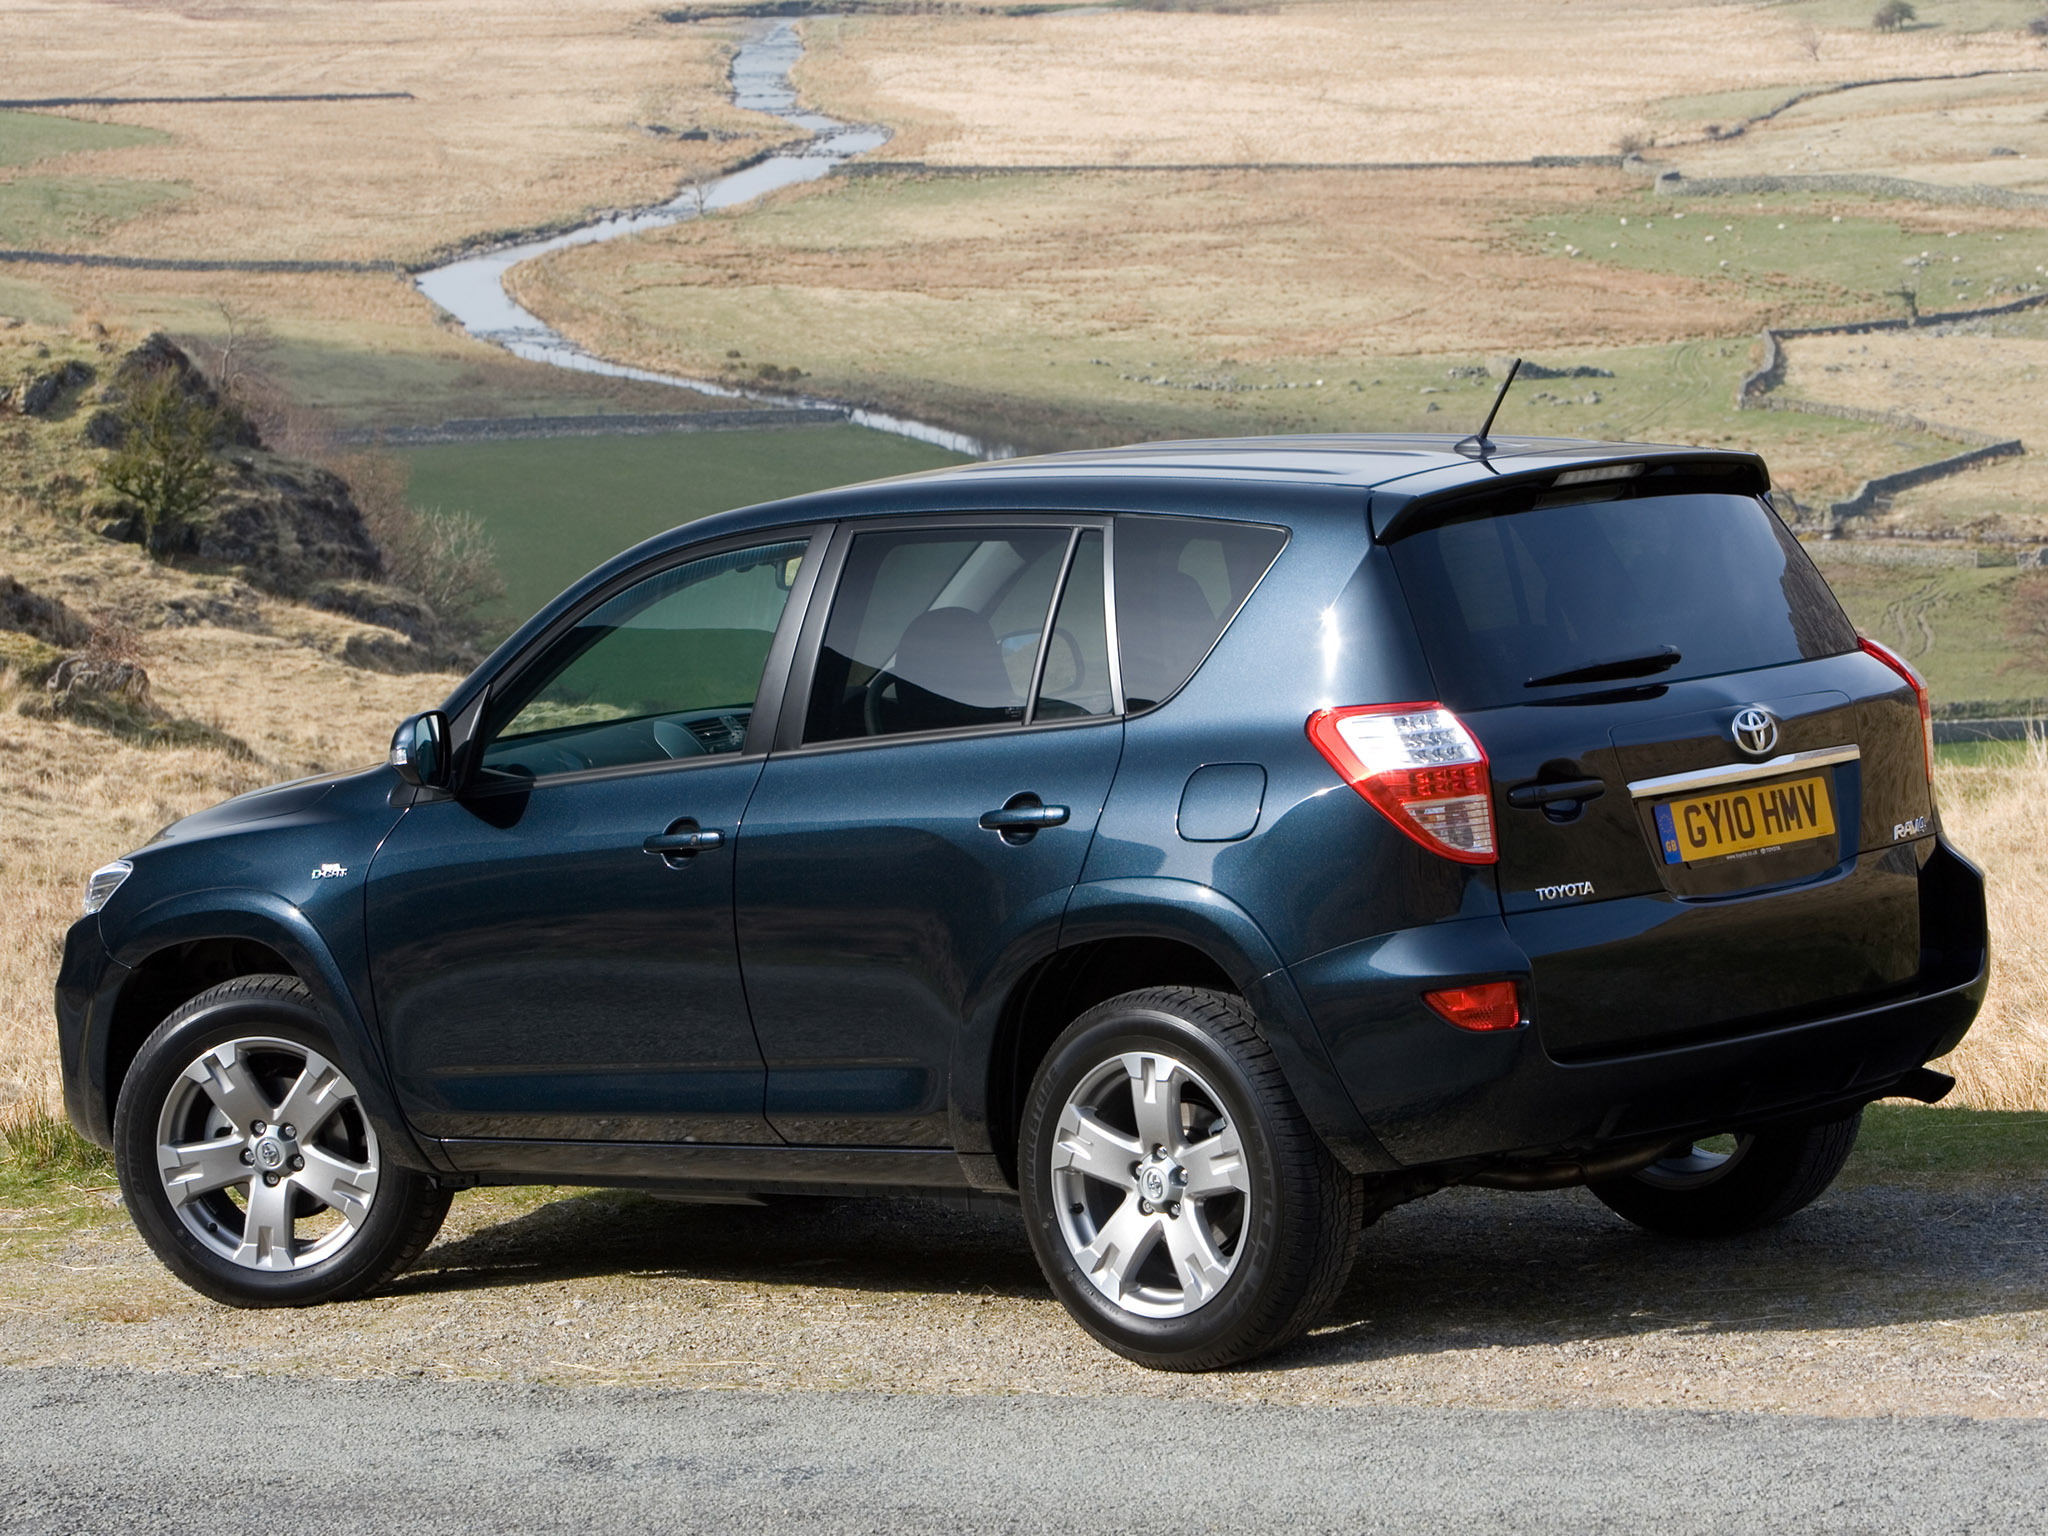 TOYOTA RAV4 5 Doors specs & photos - 2010, 2011, 2012 ...